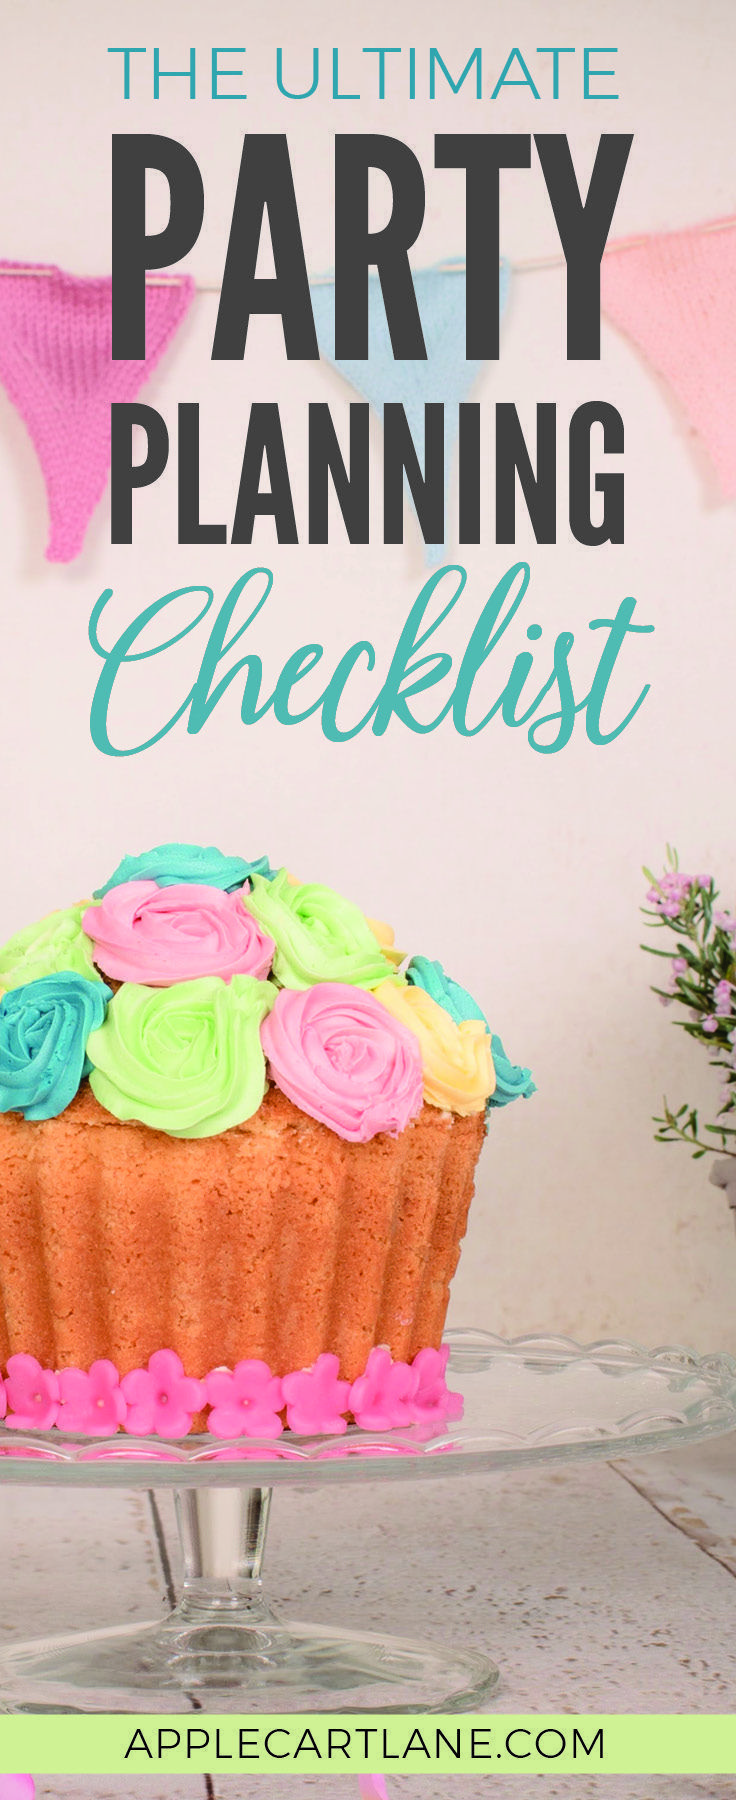 I totally would not have been able to pull of my party without this guide! There's even a free printable to help you plan:) Bring your birthday party ideas to life with a crazy helpful printable party checklist! Toddler birthday party ideas - birthday party ideas for girls - birthday party ideas for boys - how to plan a party - toddler birthday party ideas